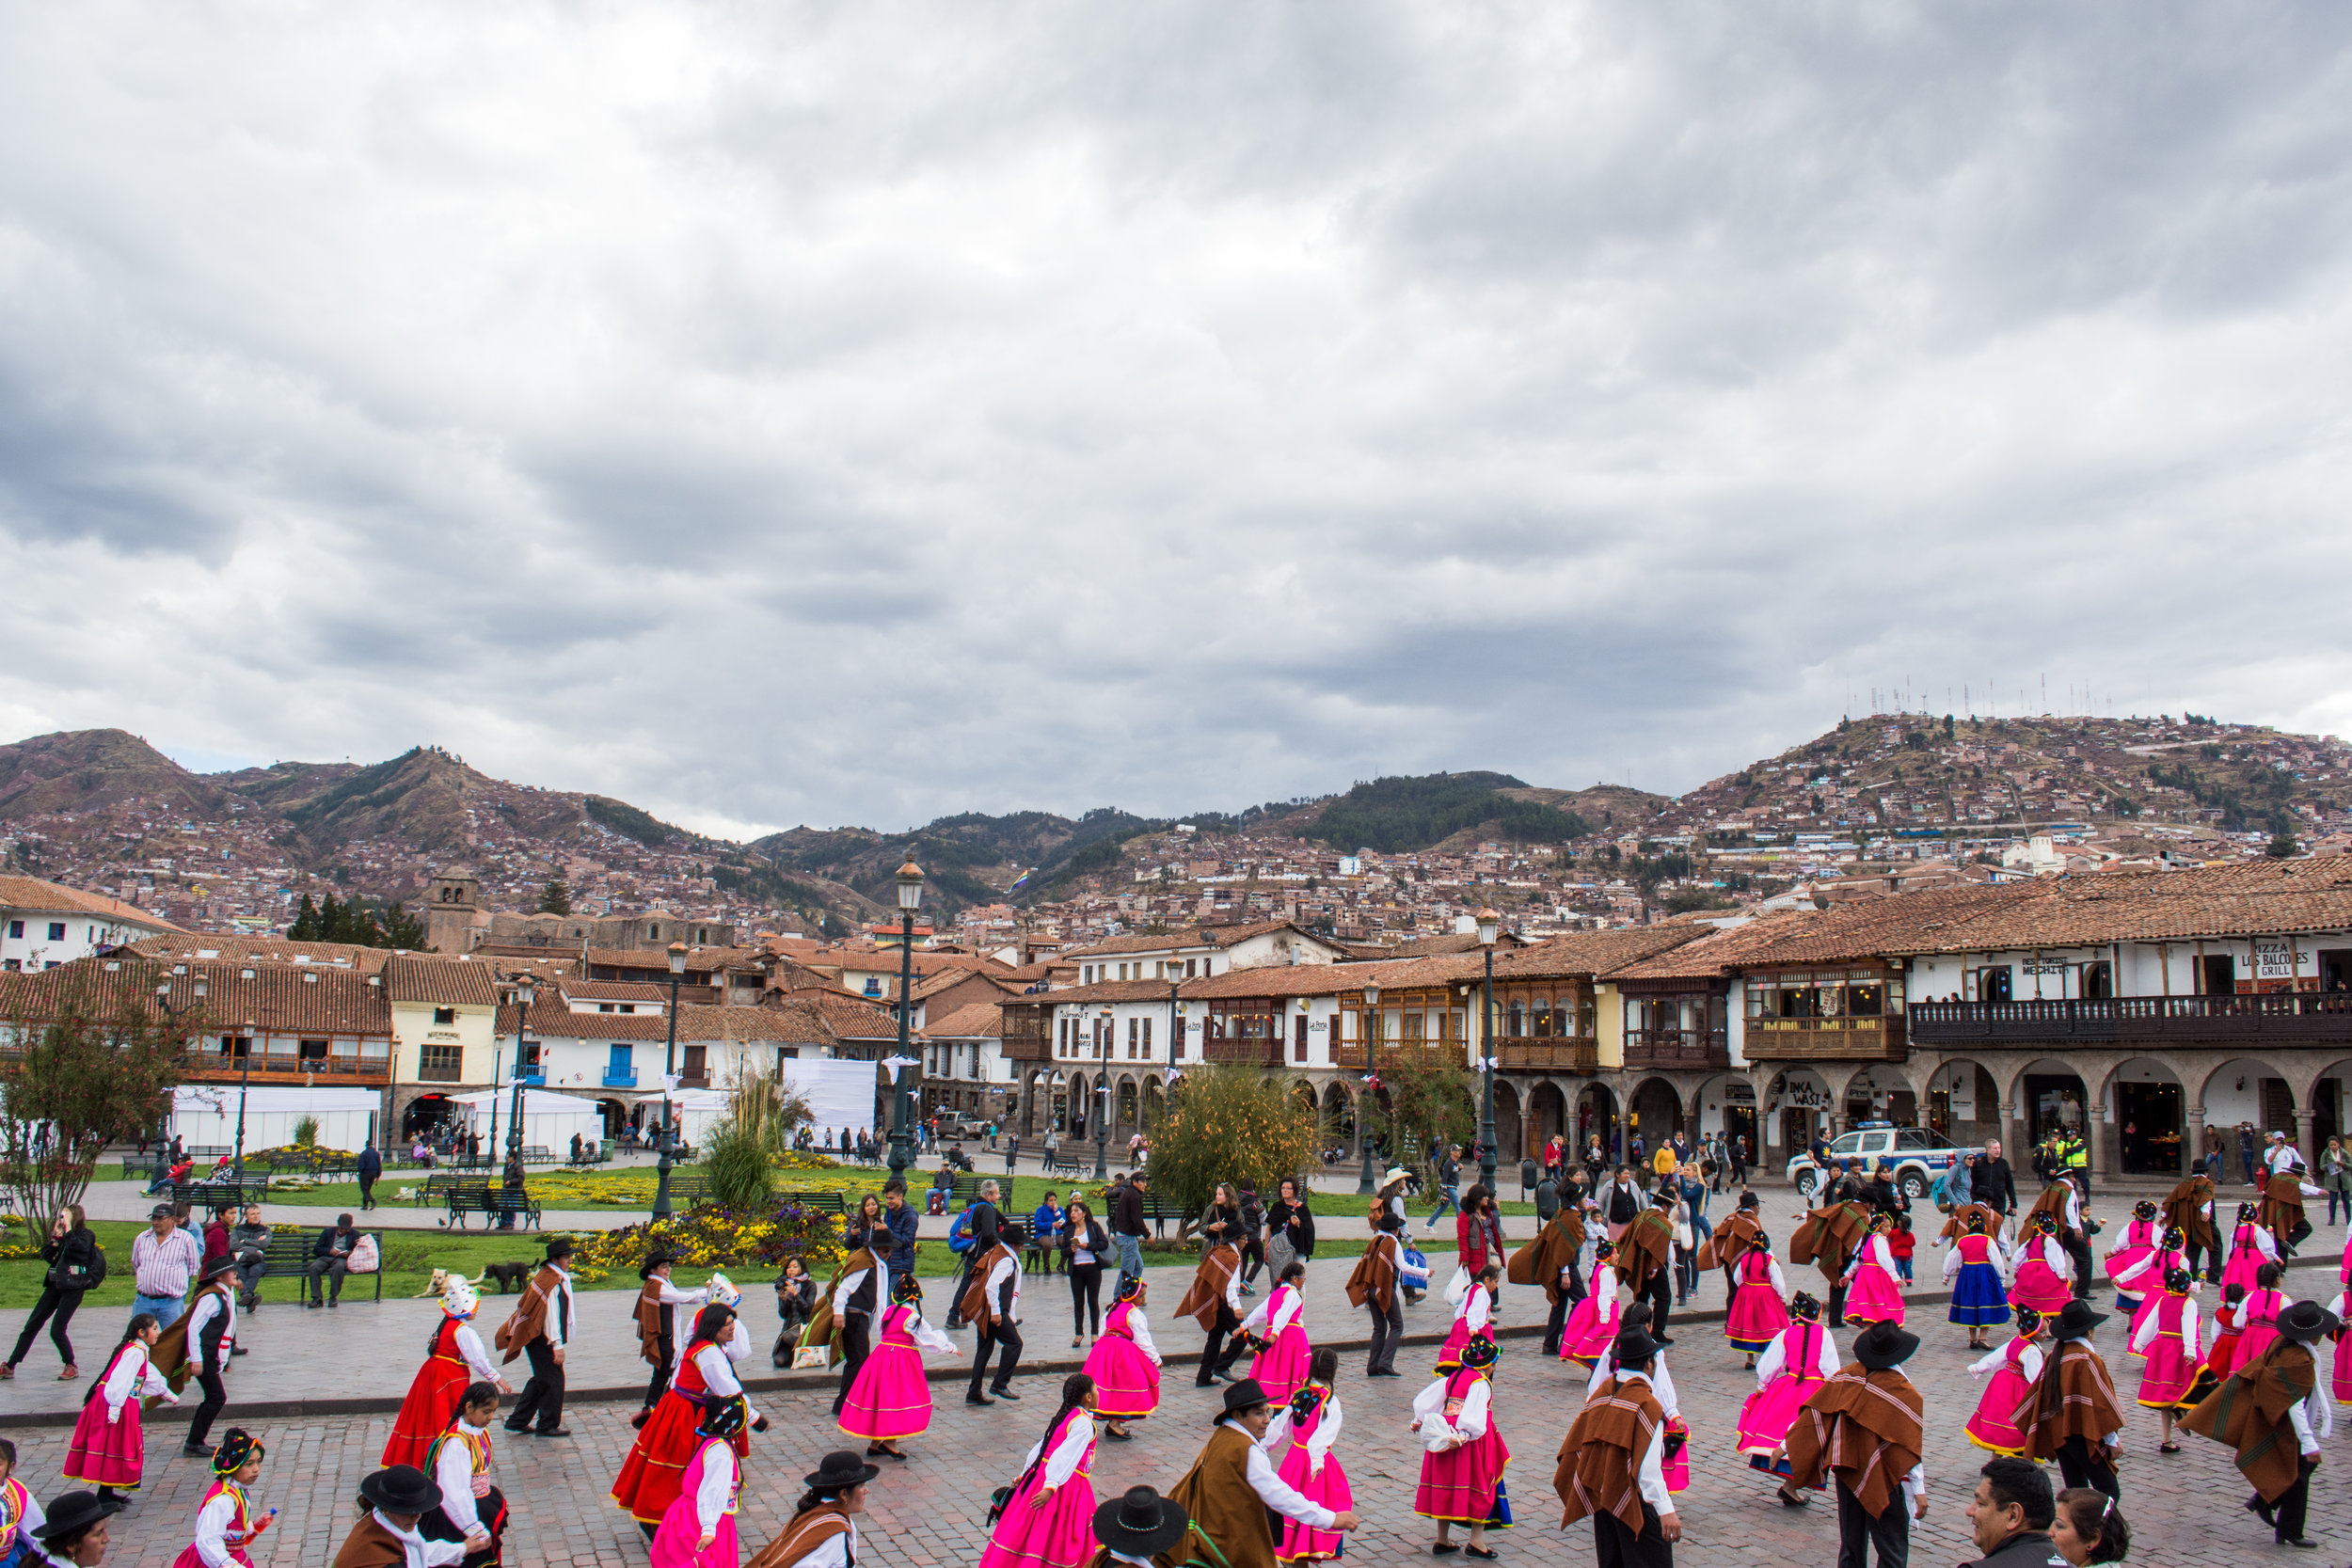 Festival in Cusco's Plaza de Armas